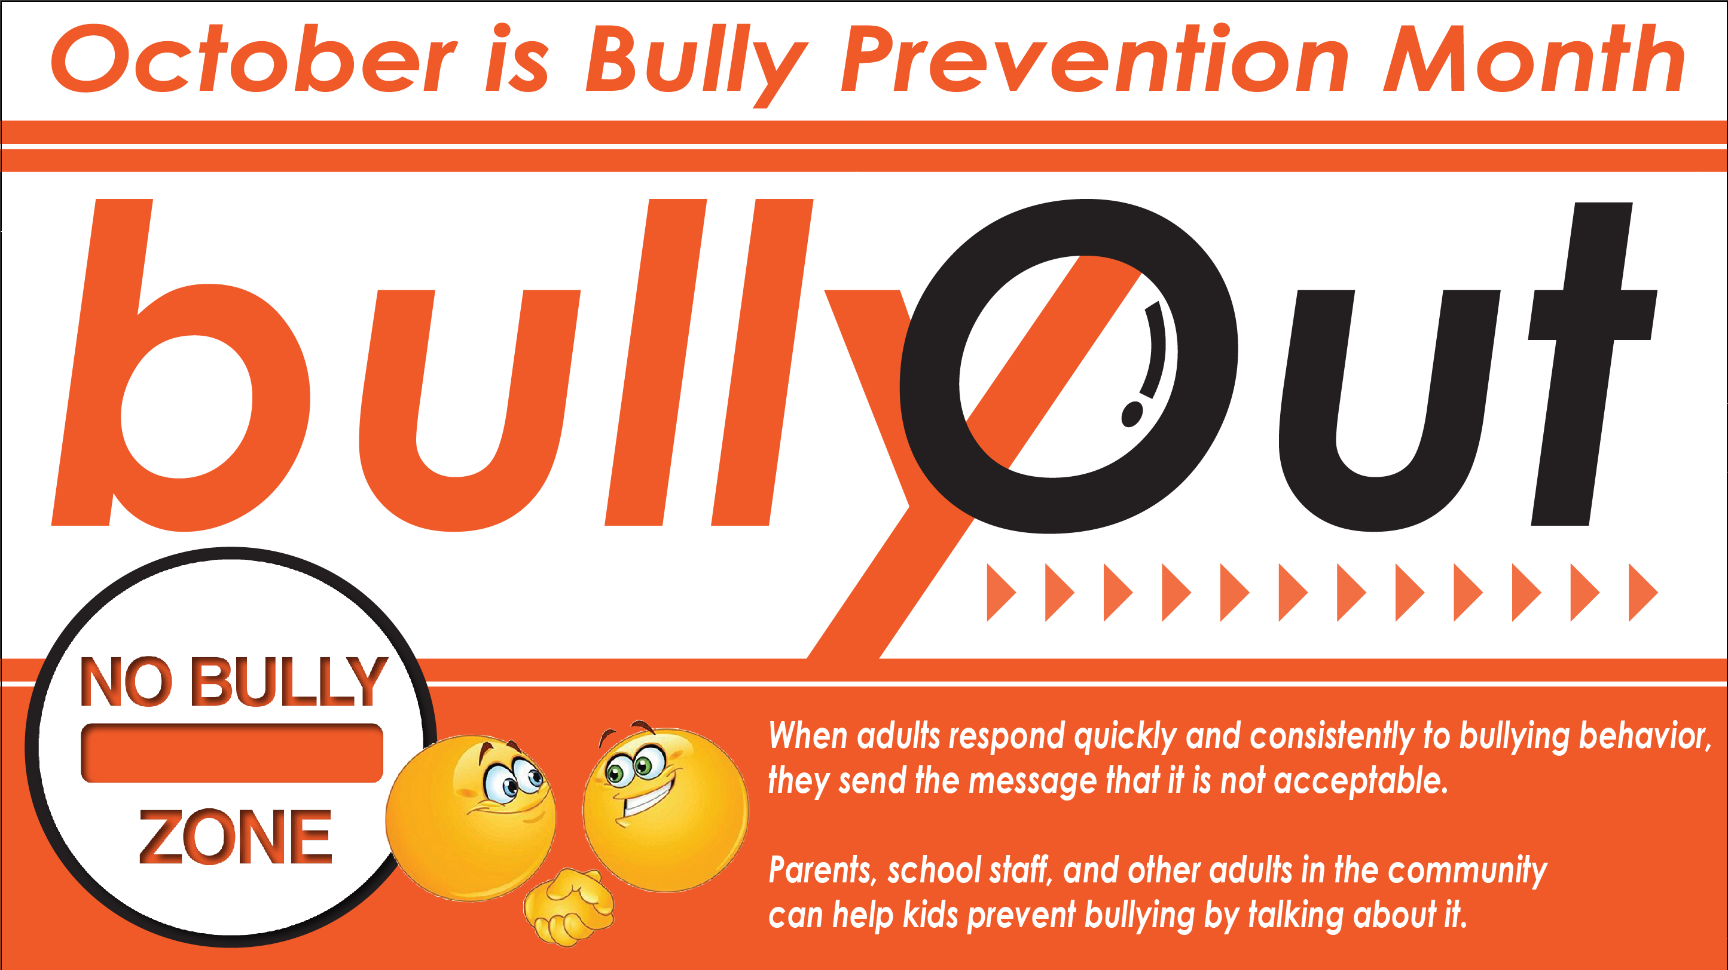 Bully prevention month graphic